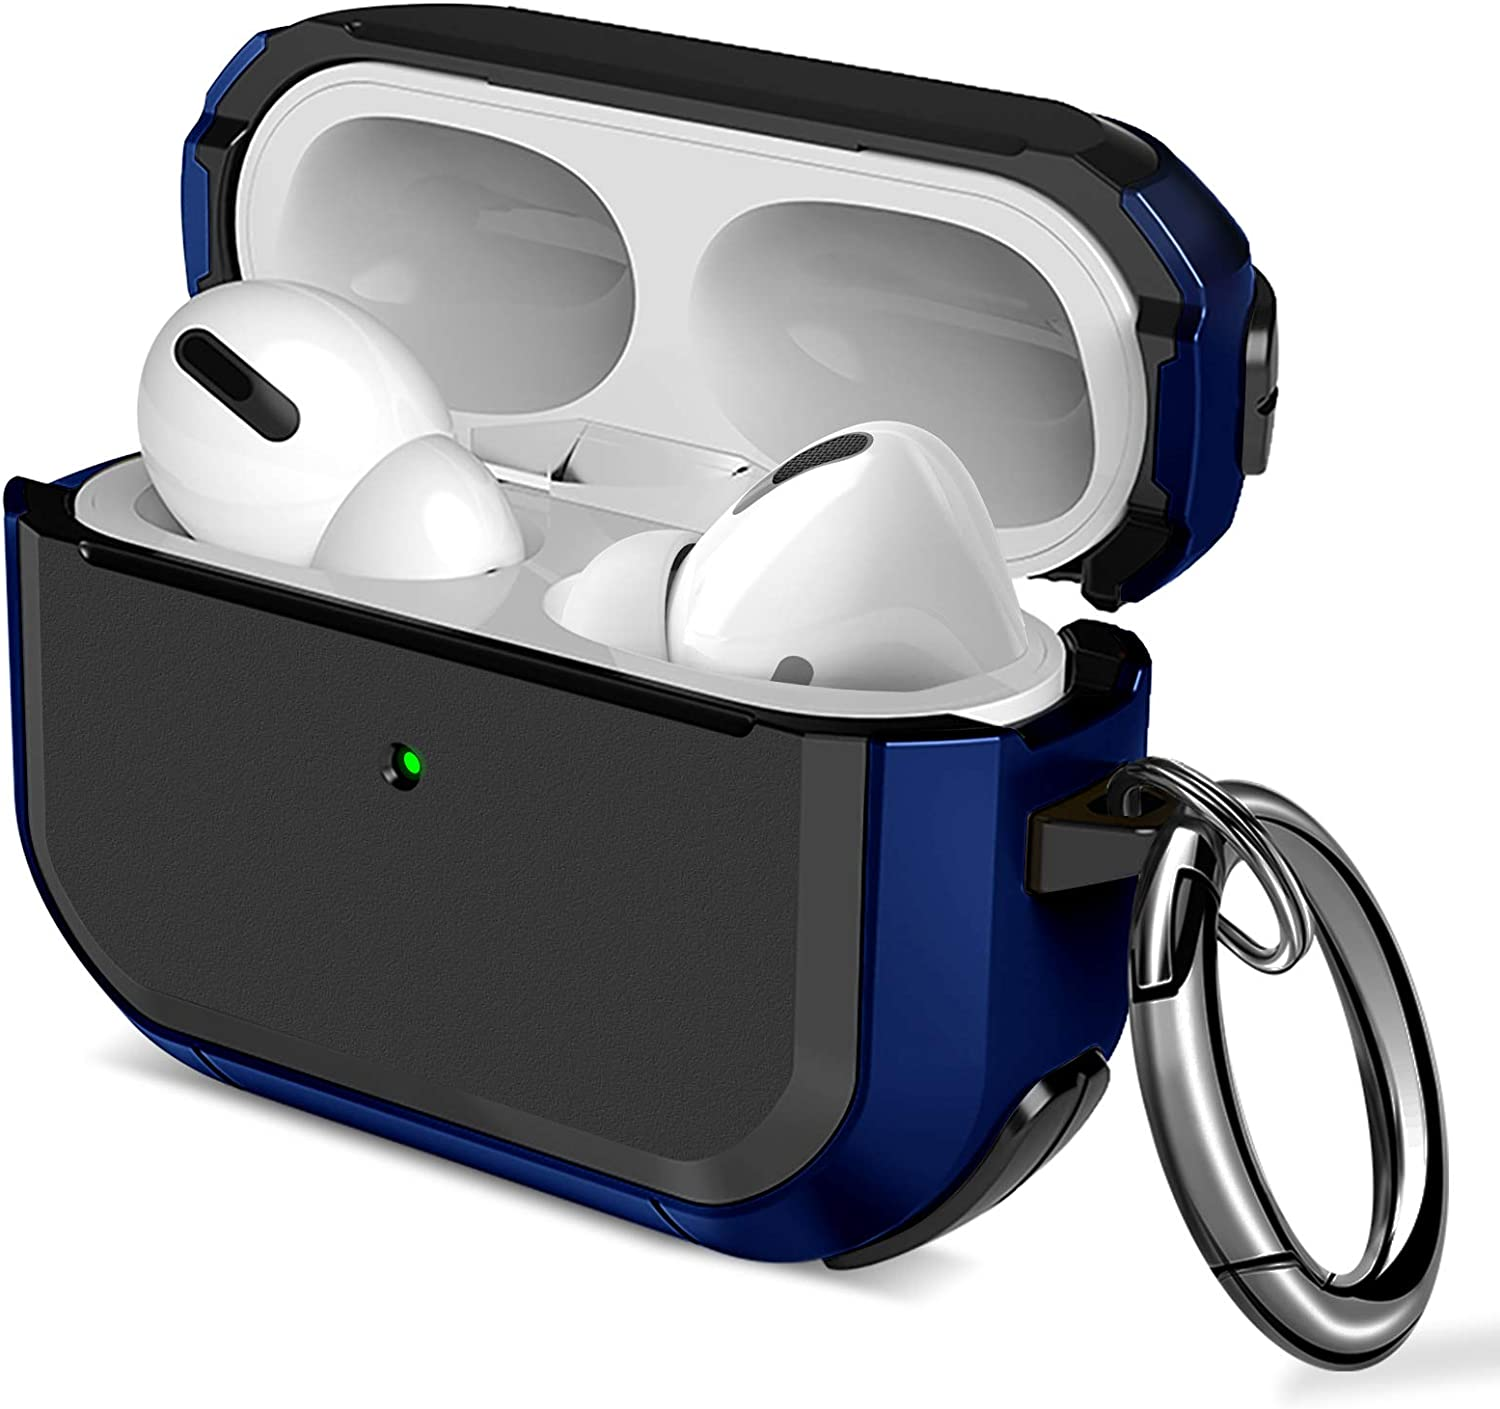 Maxjoy Airpods Pro Case Flexible TPU Protective AirPods Case Shockproof Skin Cover for Apple Airpods 3 &1 Charging Case with Keychain for Men Women [Front LED Visible] (Dark Blue)